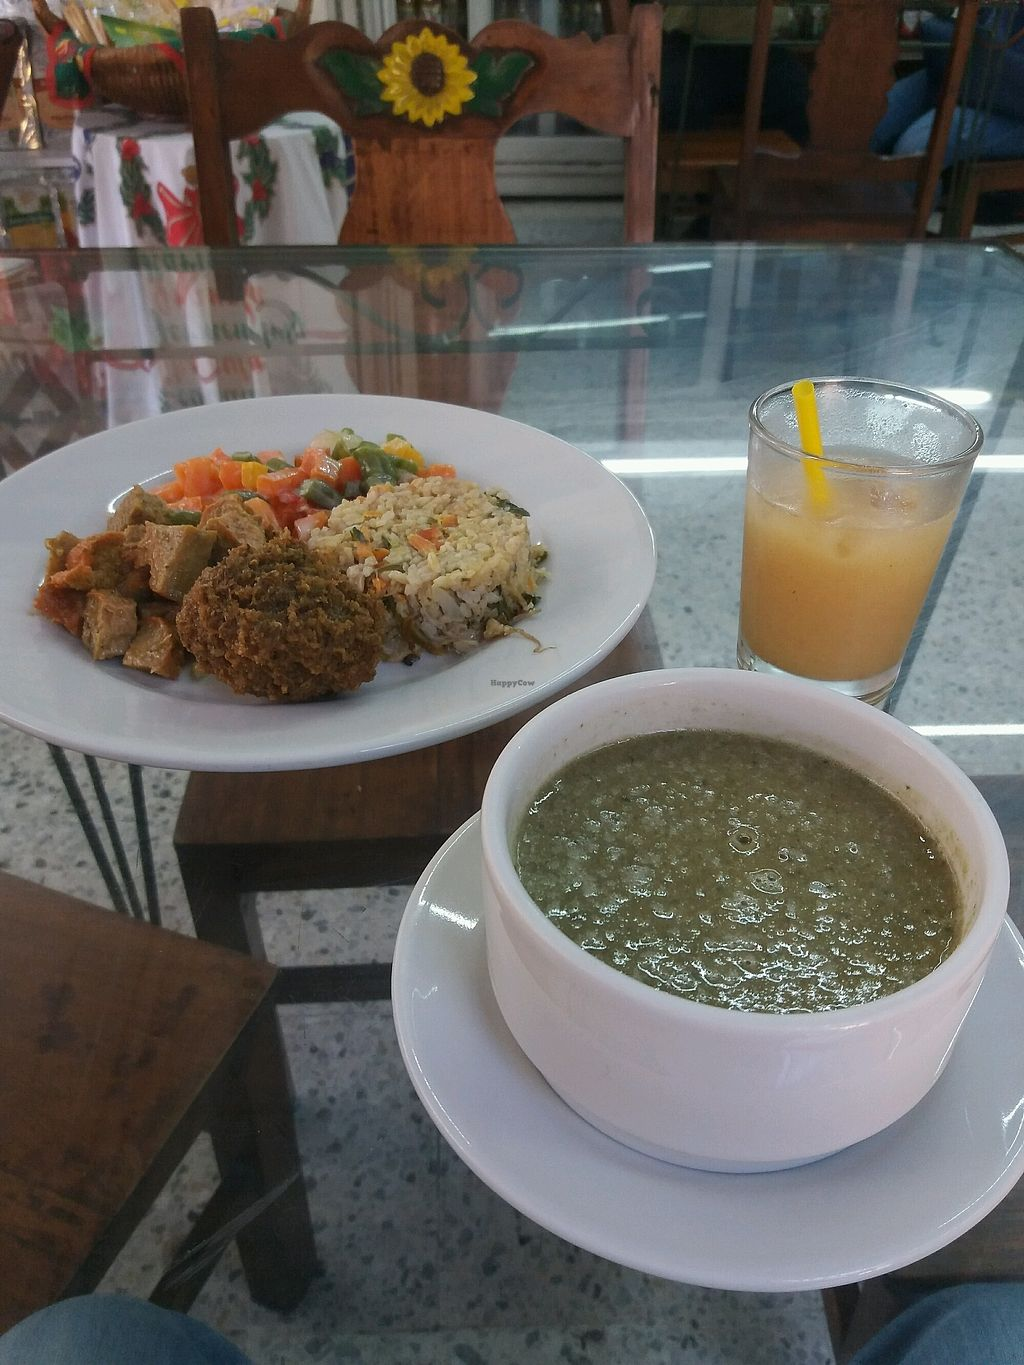 """Photo of Girasoles Restaurante Vegetariano  by <a href=""""/members/profile/TomK"""">TomK</a> <br/>Menu of the day for 10k COL  <br/> December 30, 2017  - <a href='/contact/abuse/image/17721/340931'>Report</a>"""